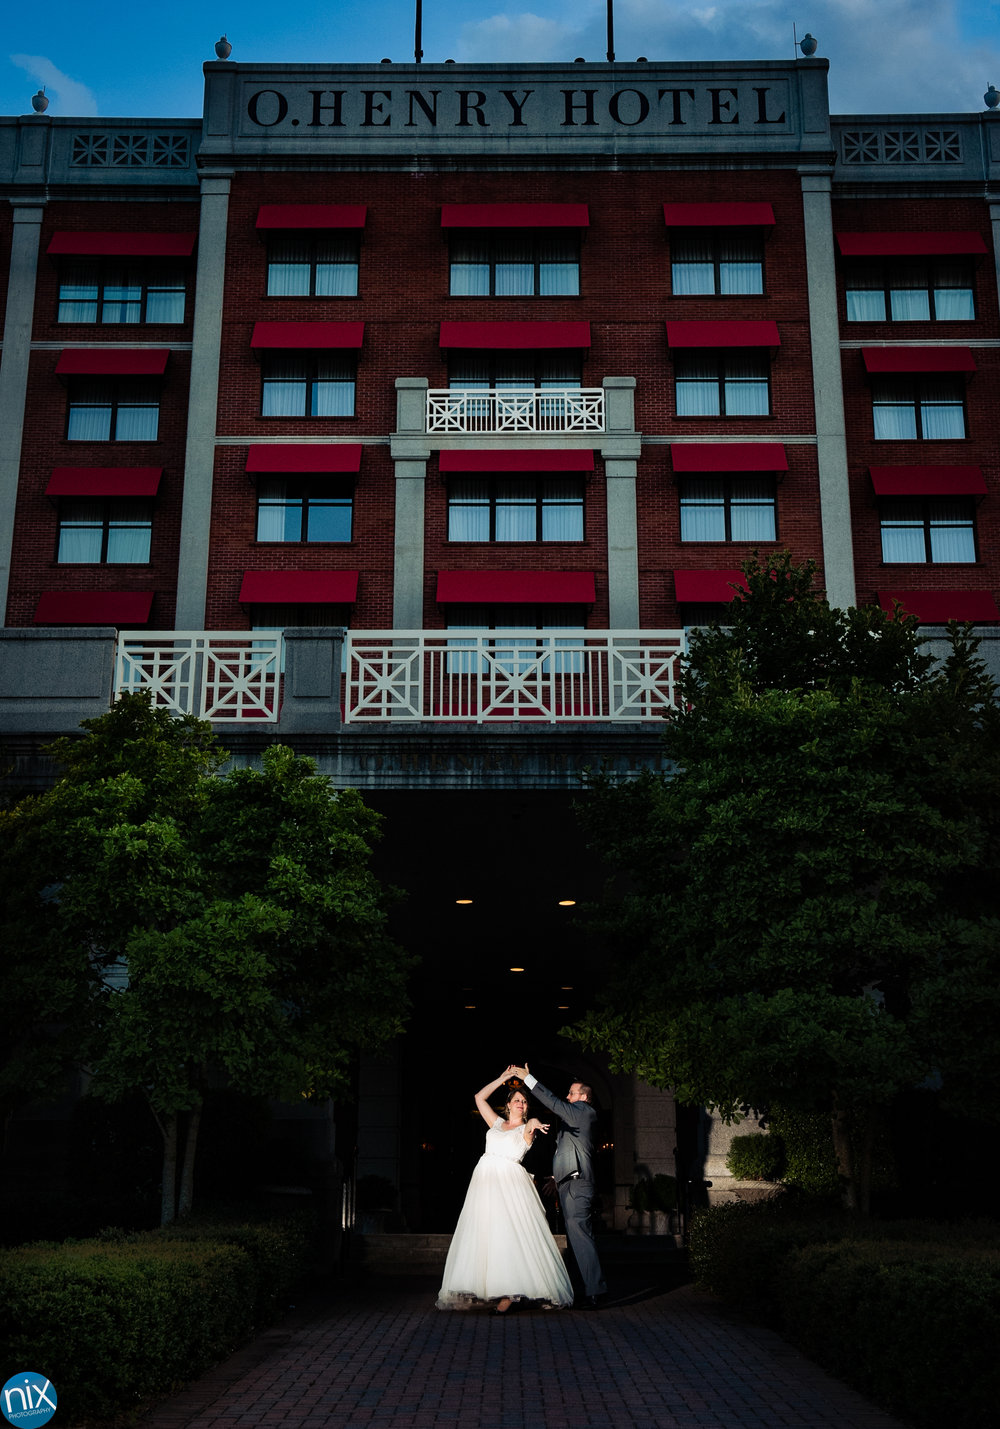 bride_and_groom_o_henry_hotel.jpg